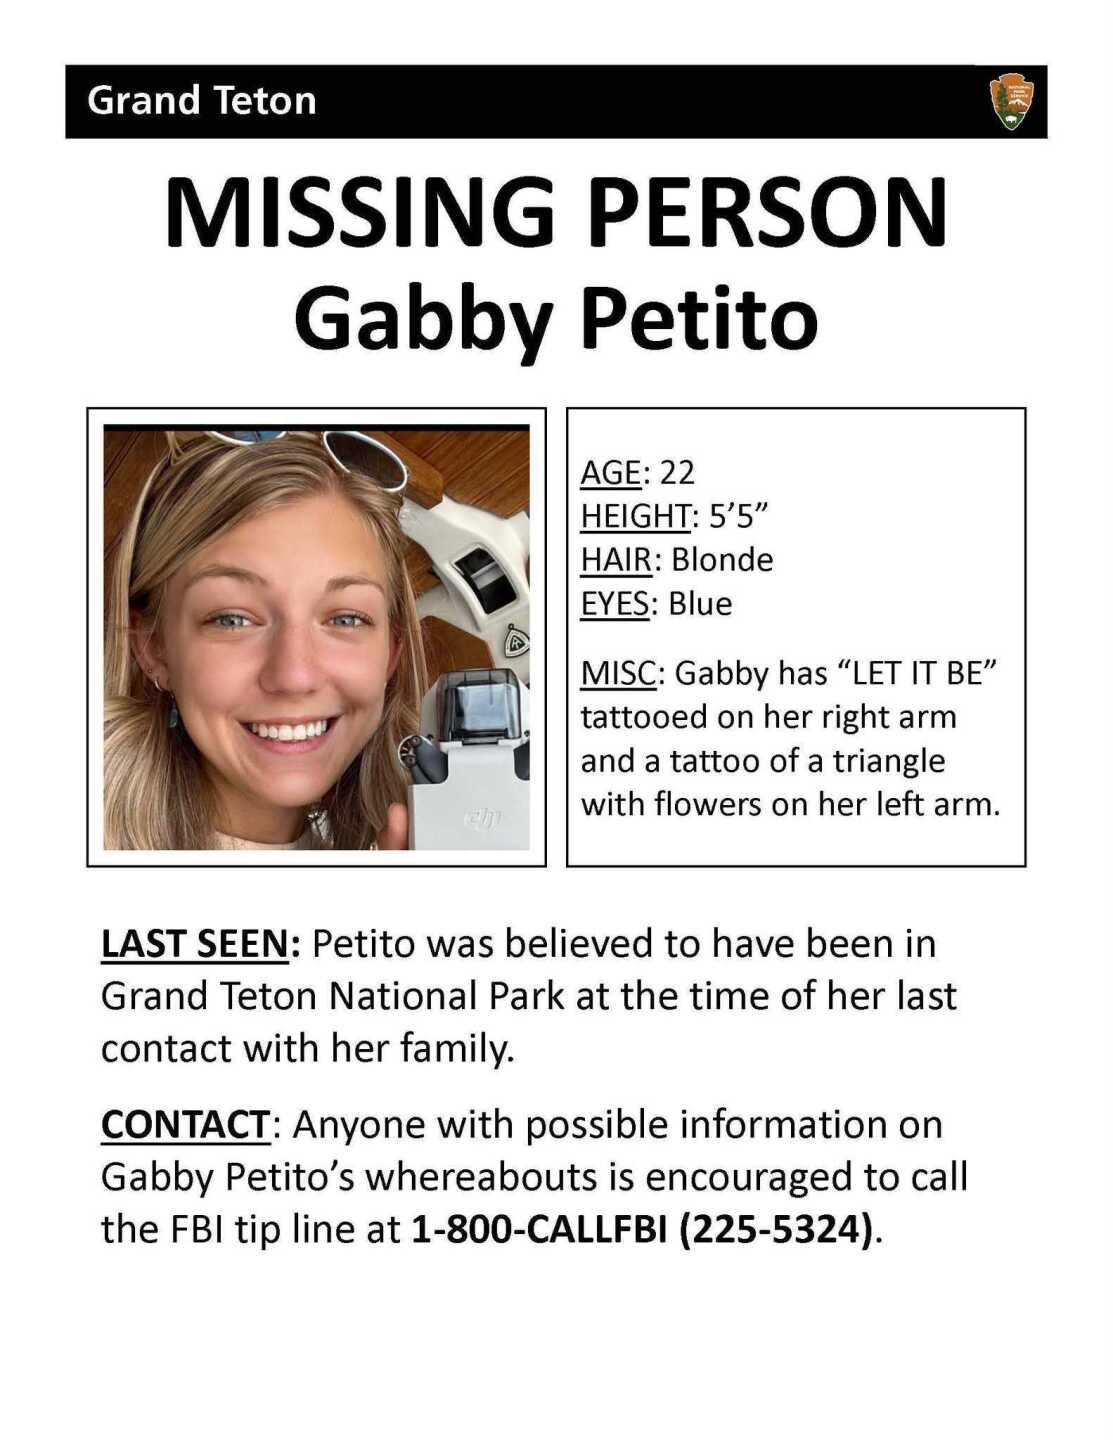 GABBY PETITO-MISSING PERSONS FLYER.jpg